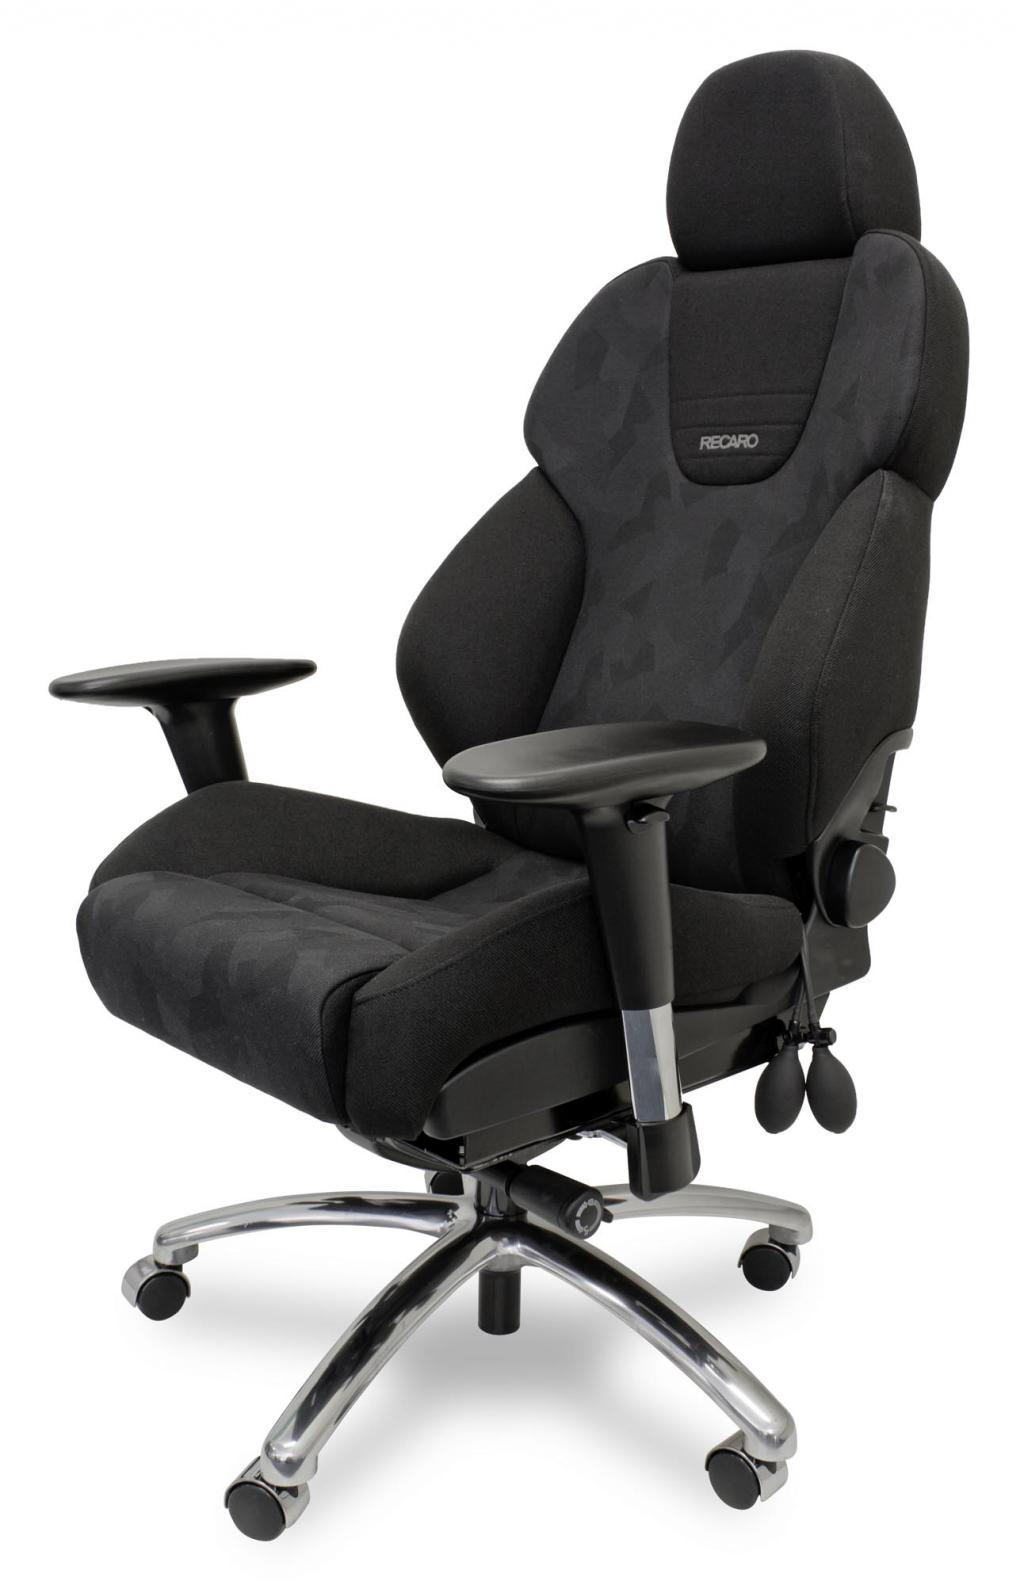 Image of: Good Reclining Office Chair